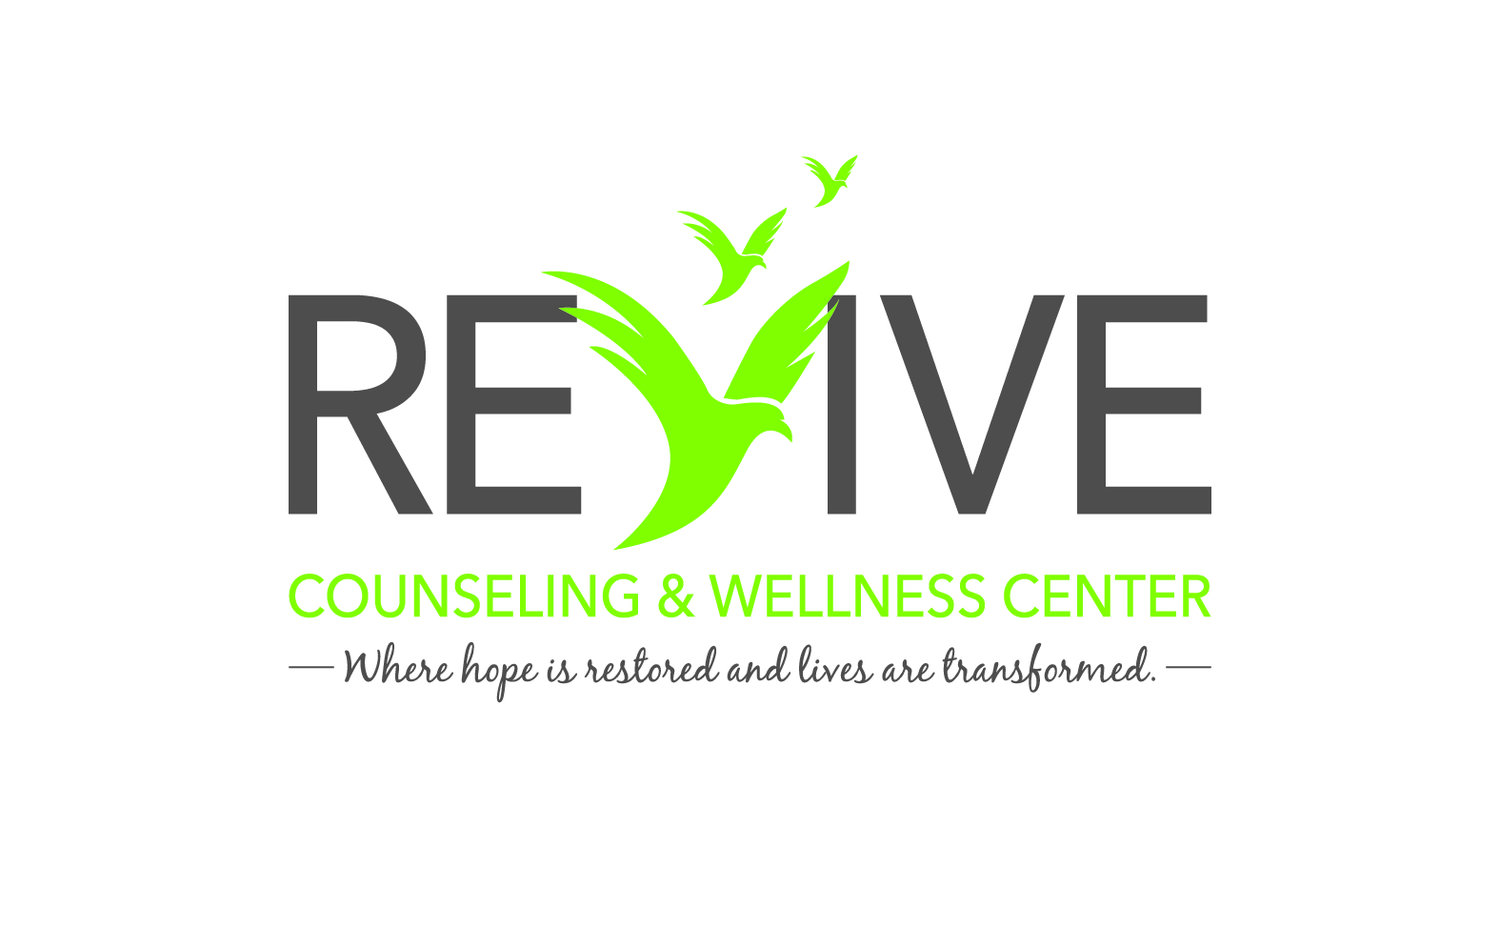 Revive Counseling & Wellness Center, Inc.